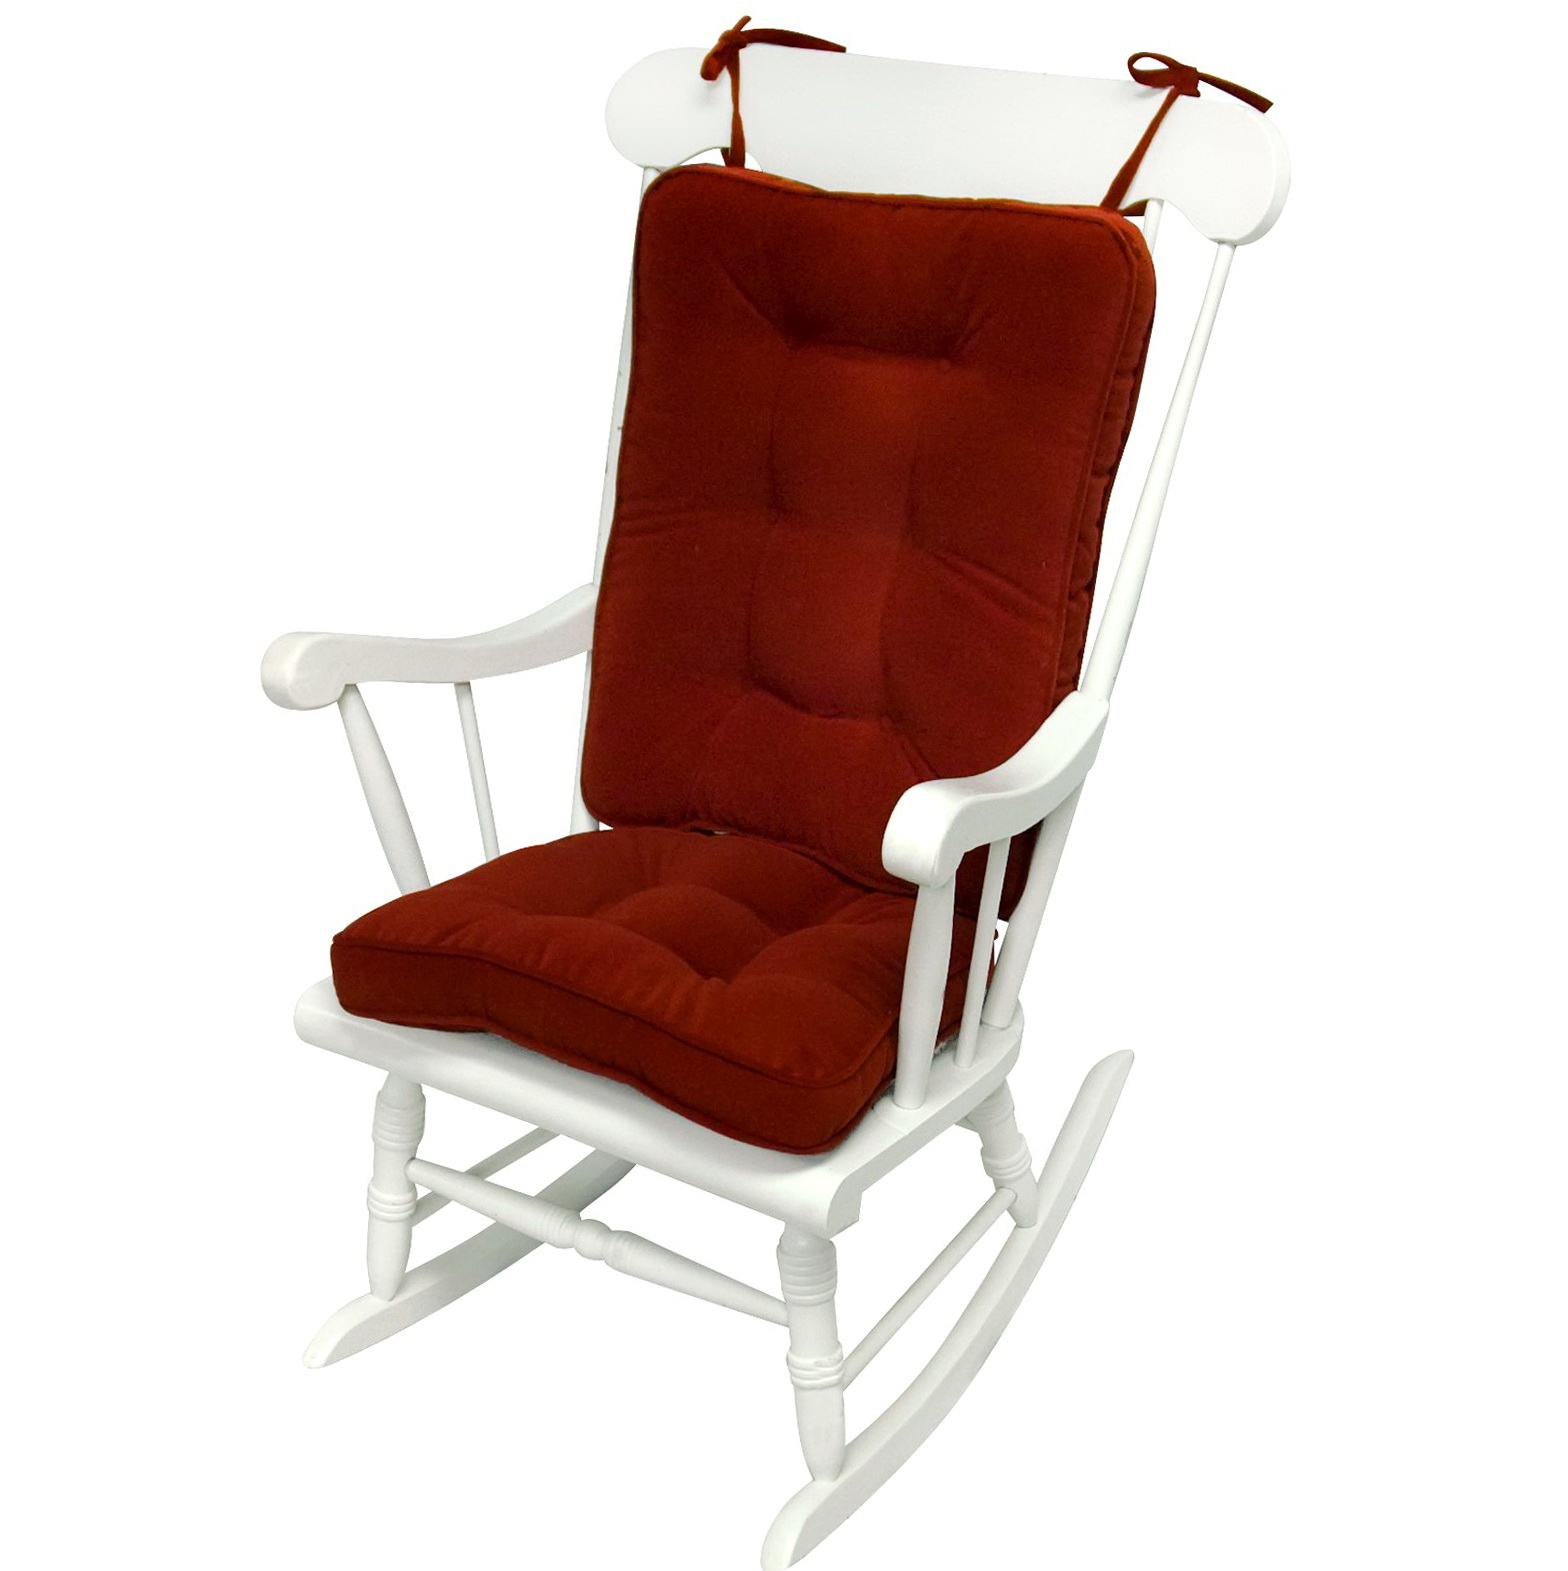 glider rocker chair cushions swing in chennai rocking seat home design ideas